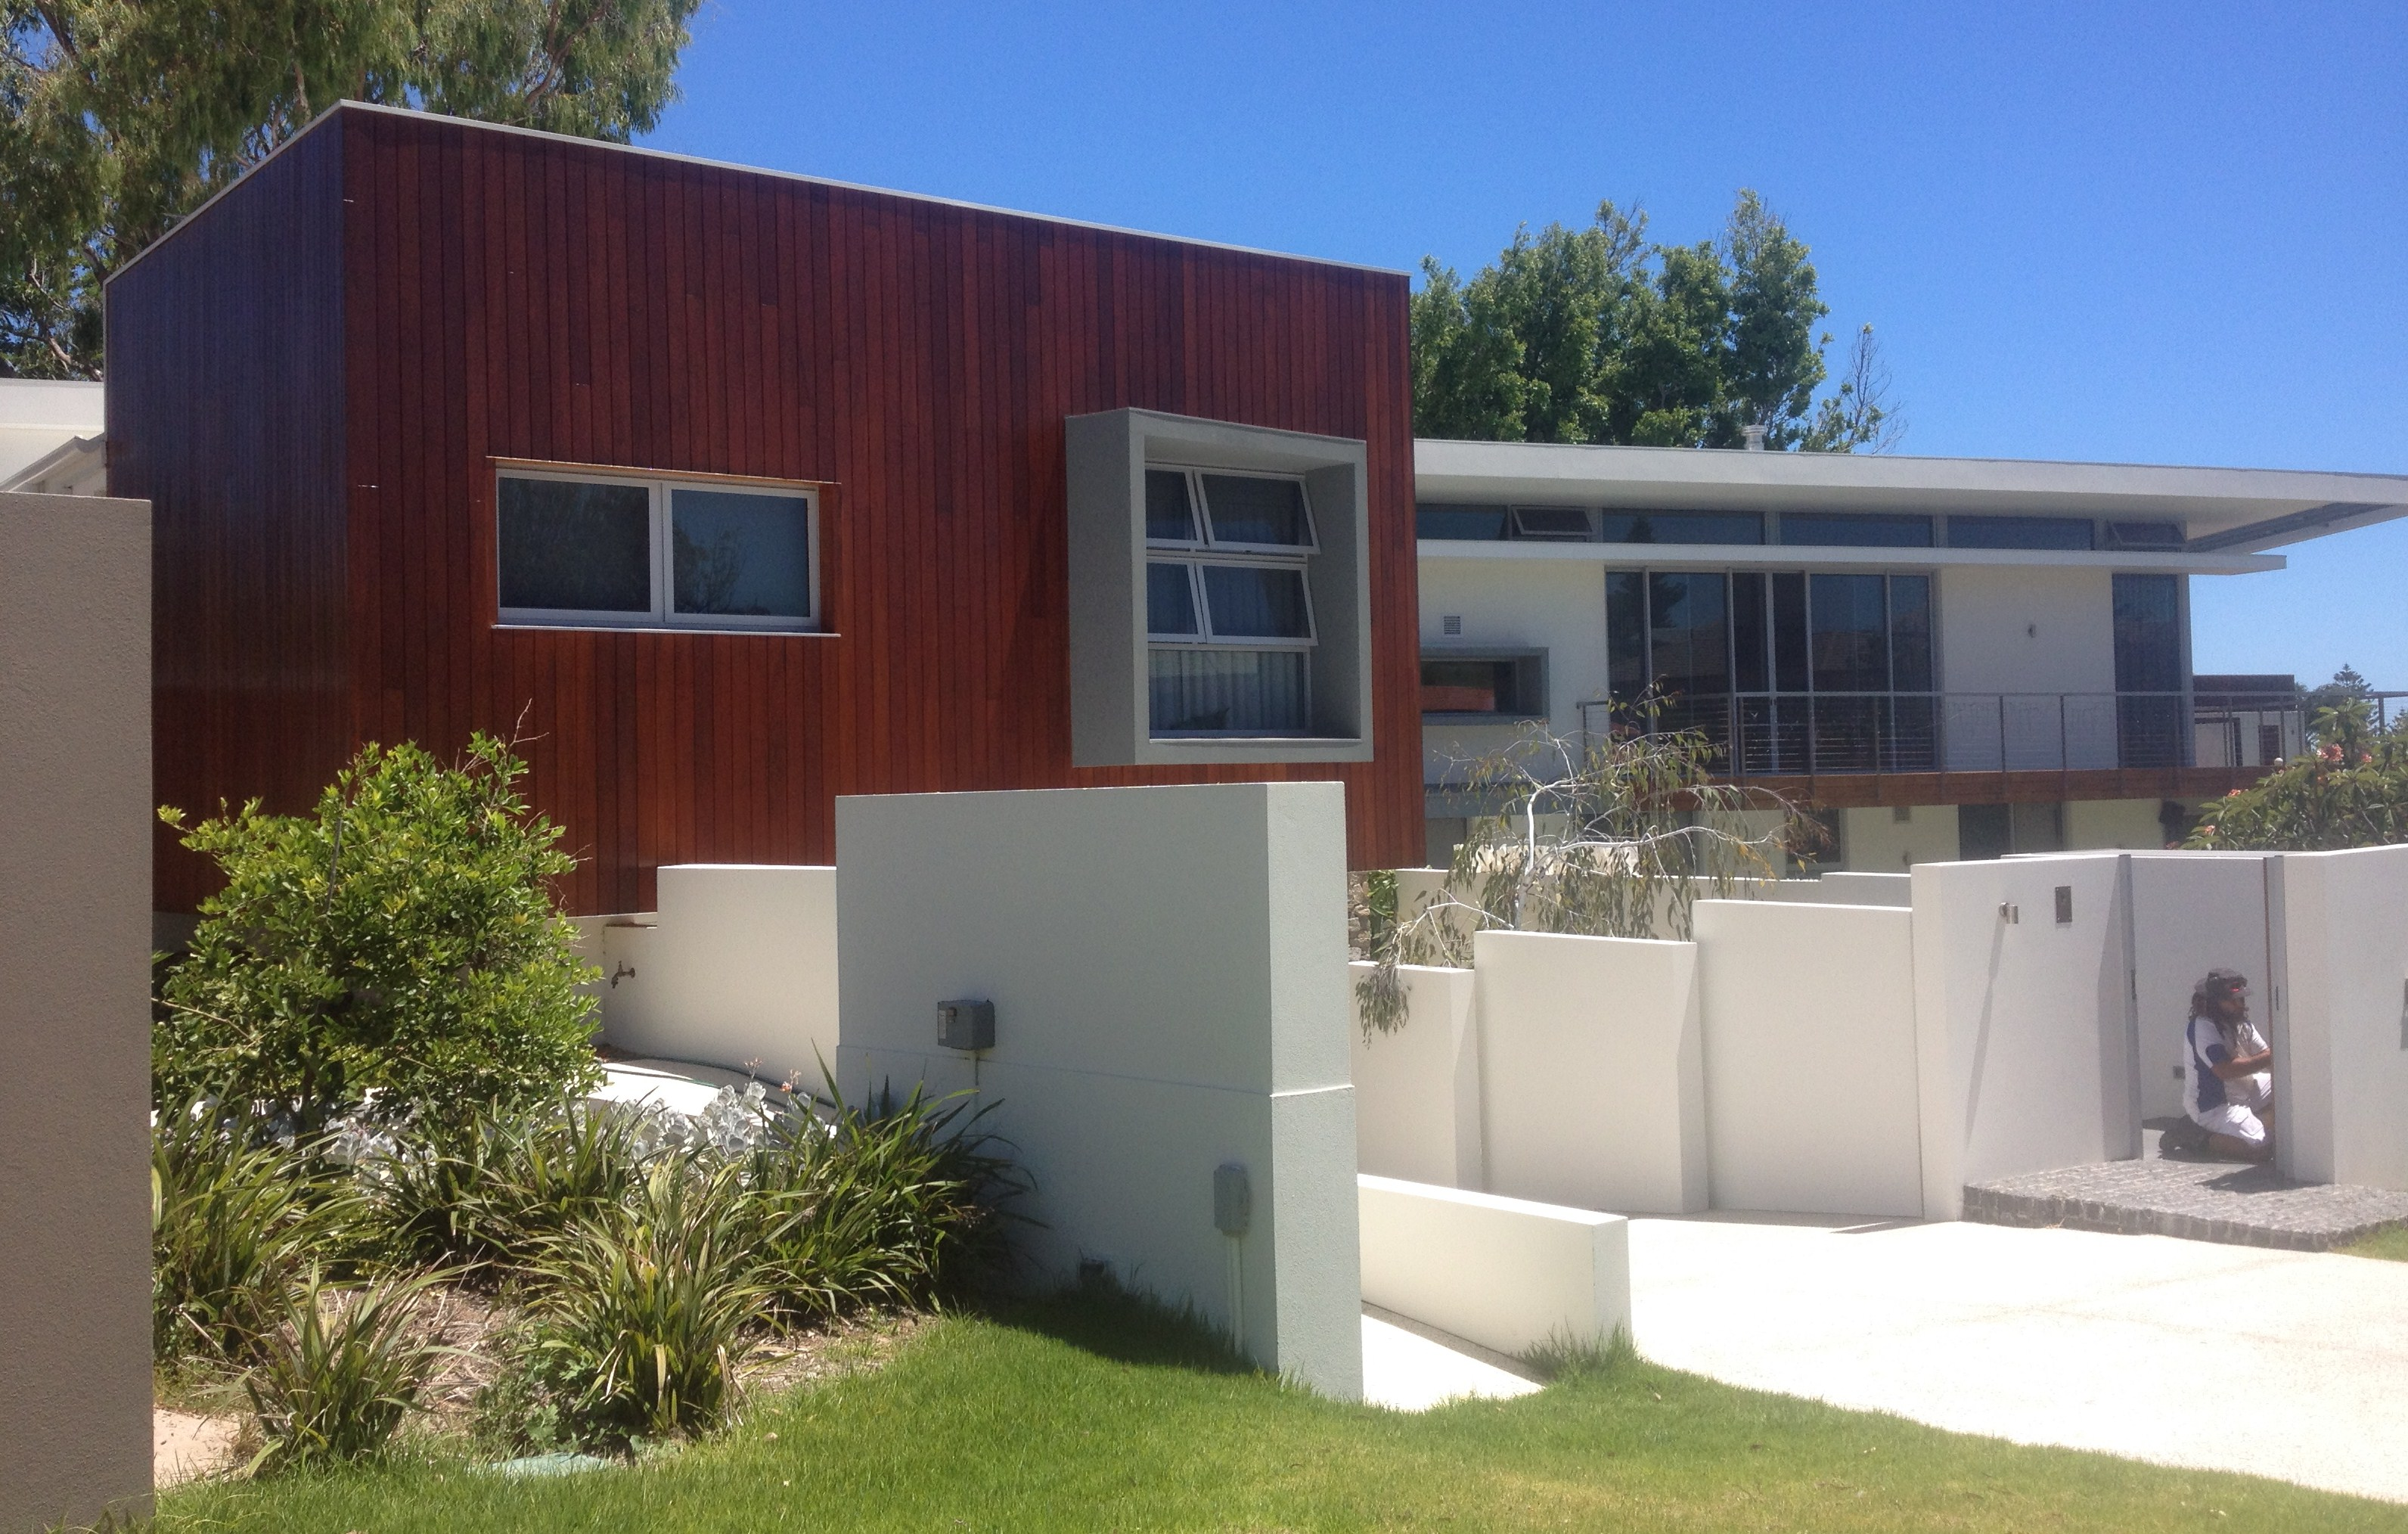 Large modern residential home finished with wood and painted in dark brown stain and white wash